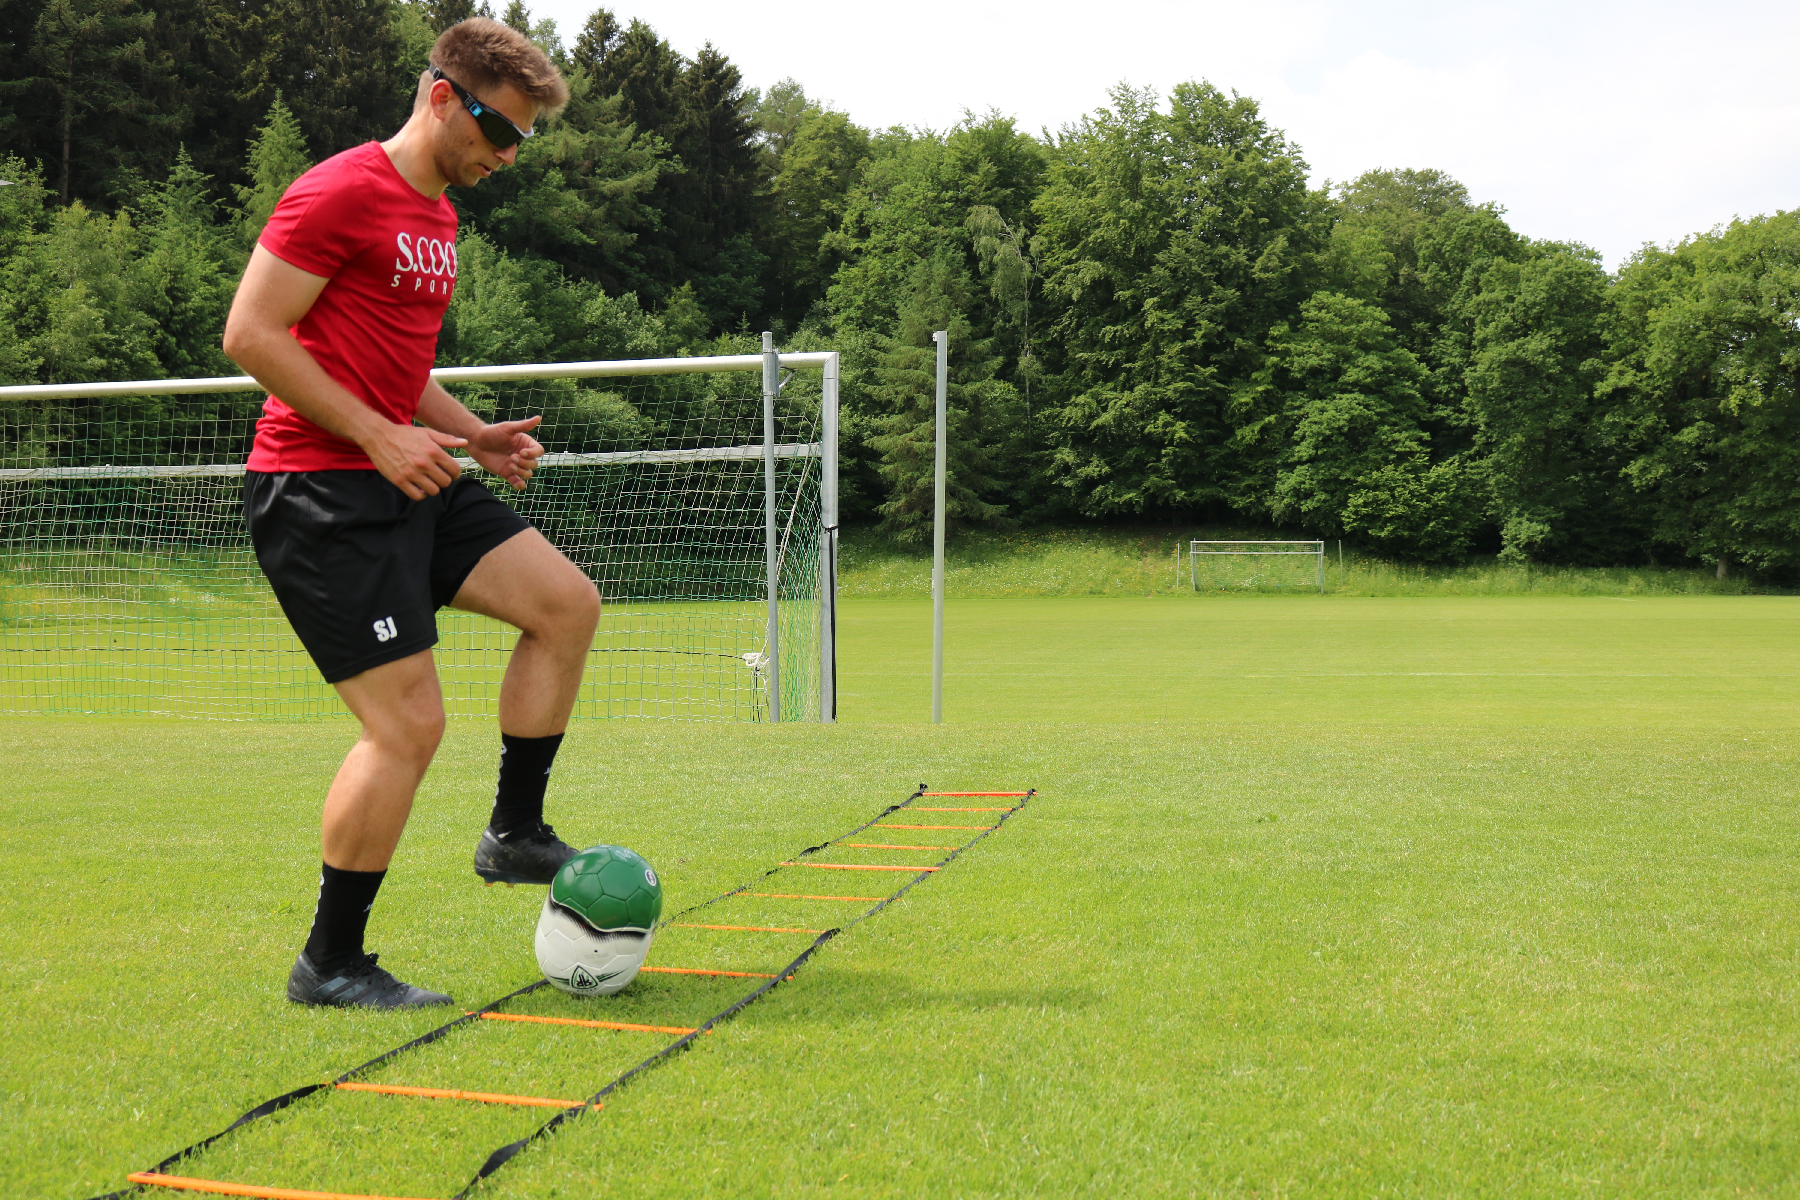 Soccerkinetics - multidimensionales Fußballtraining